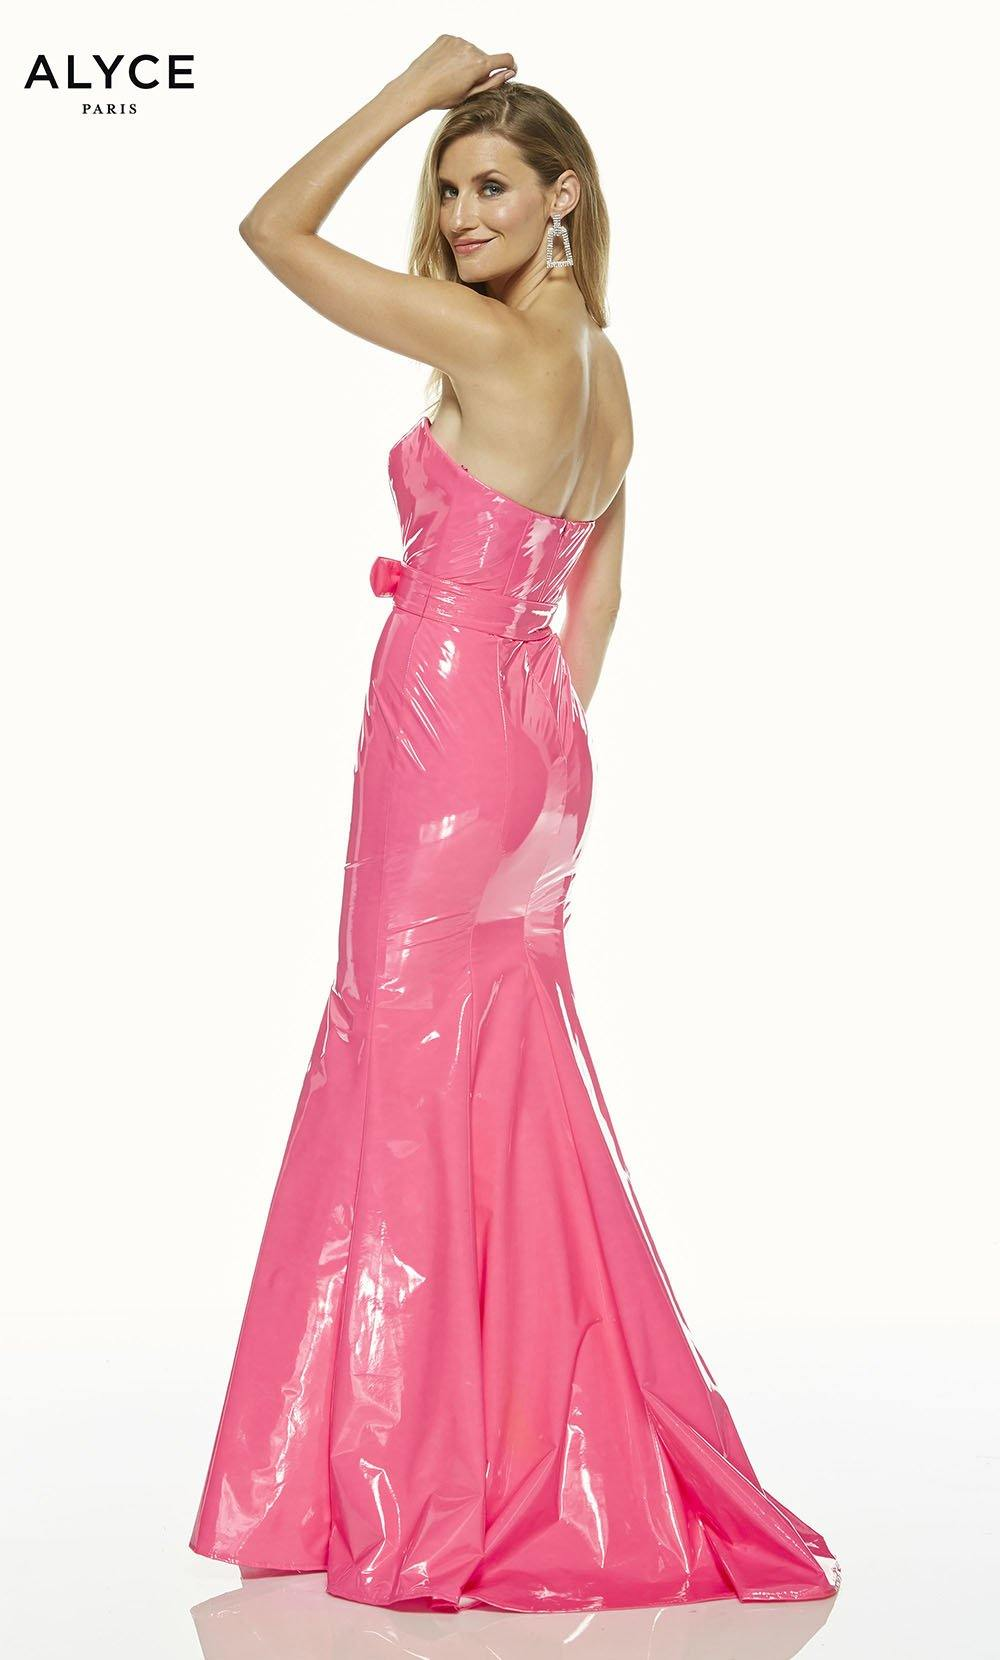 Barbie Pink strapless mermaid dress with a belt